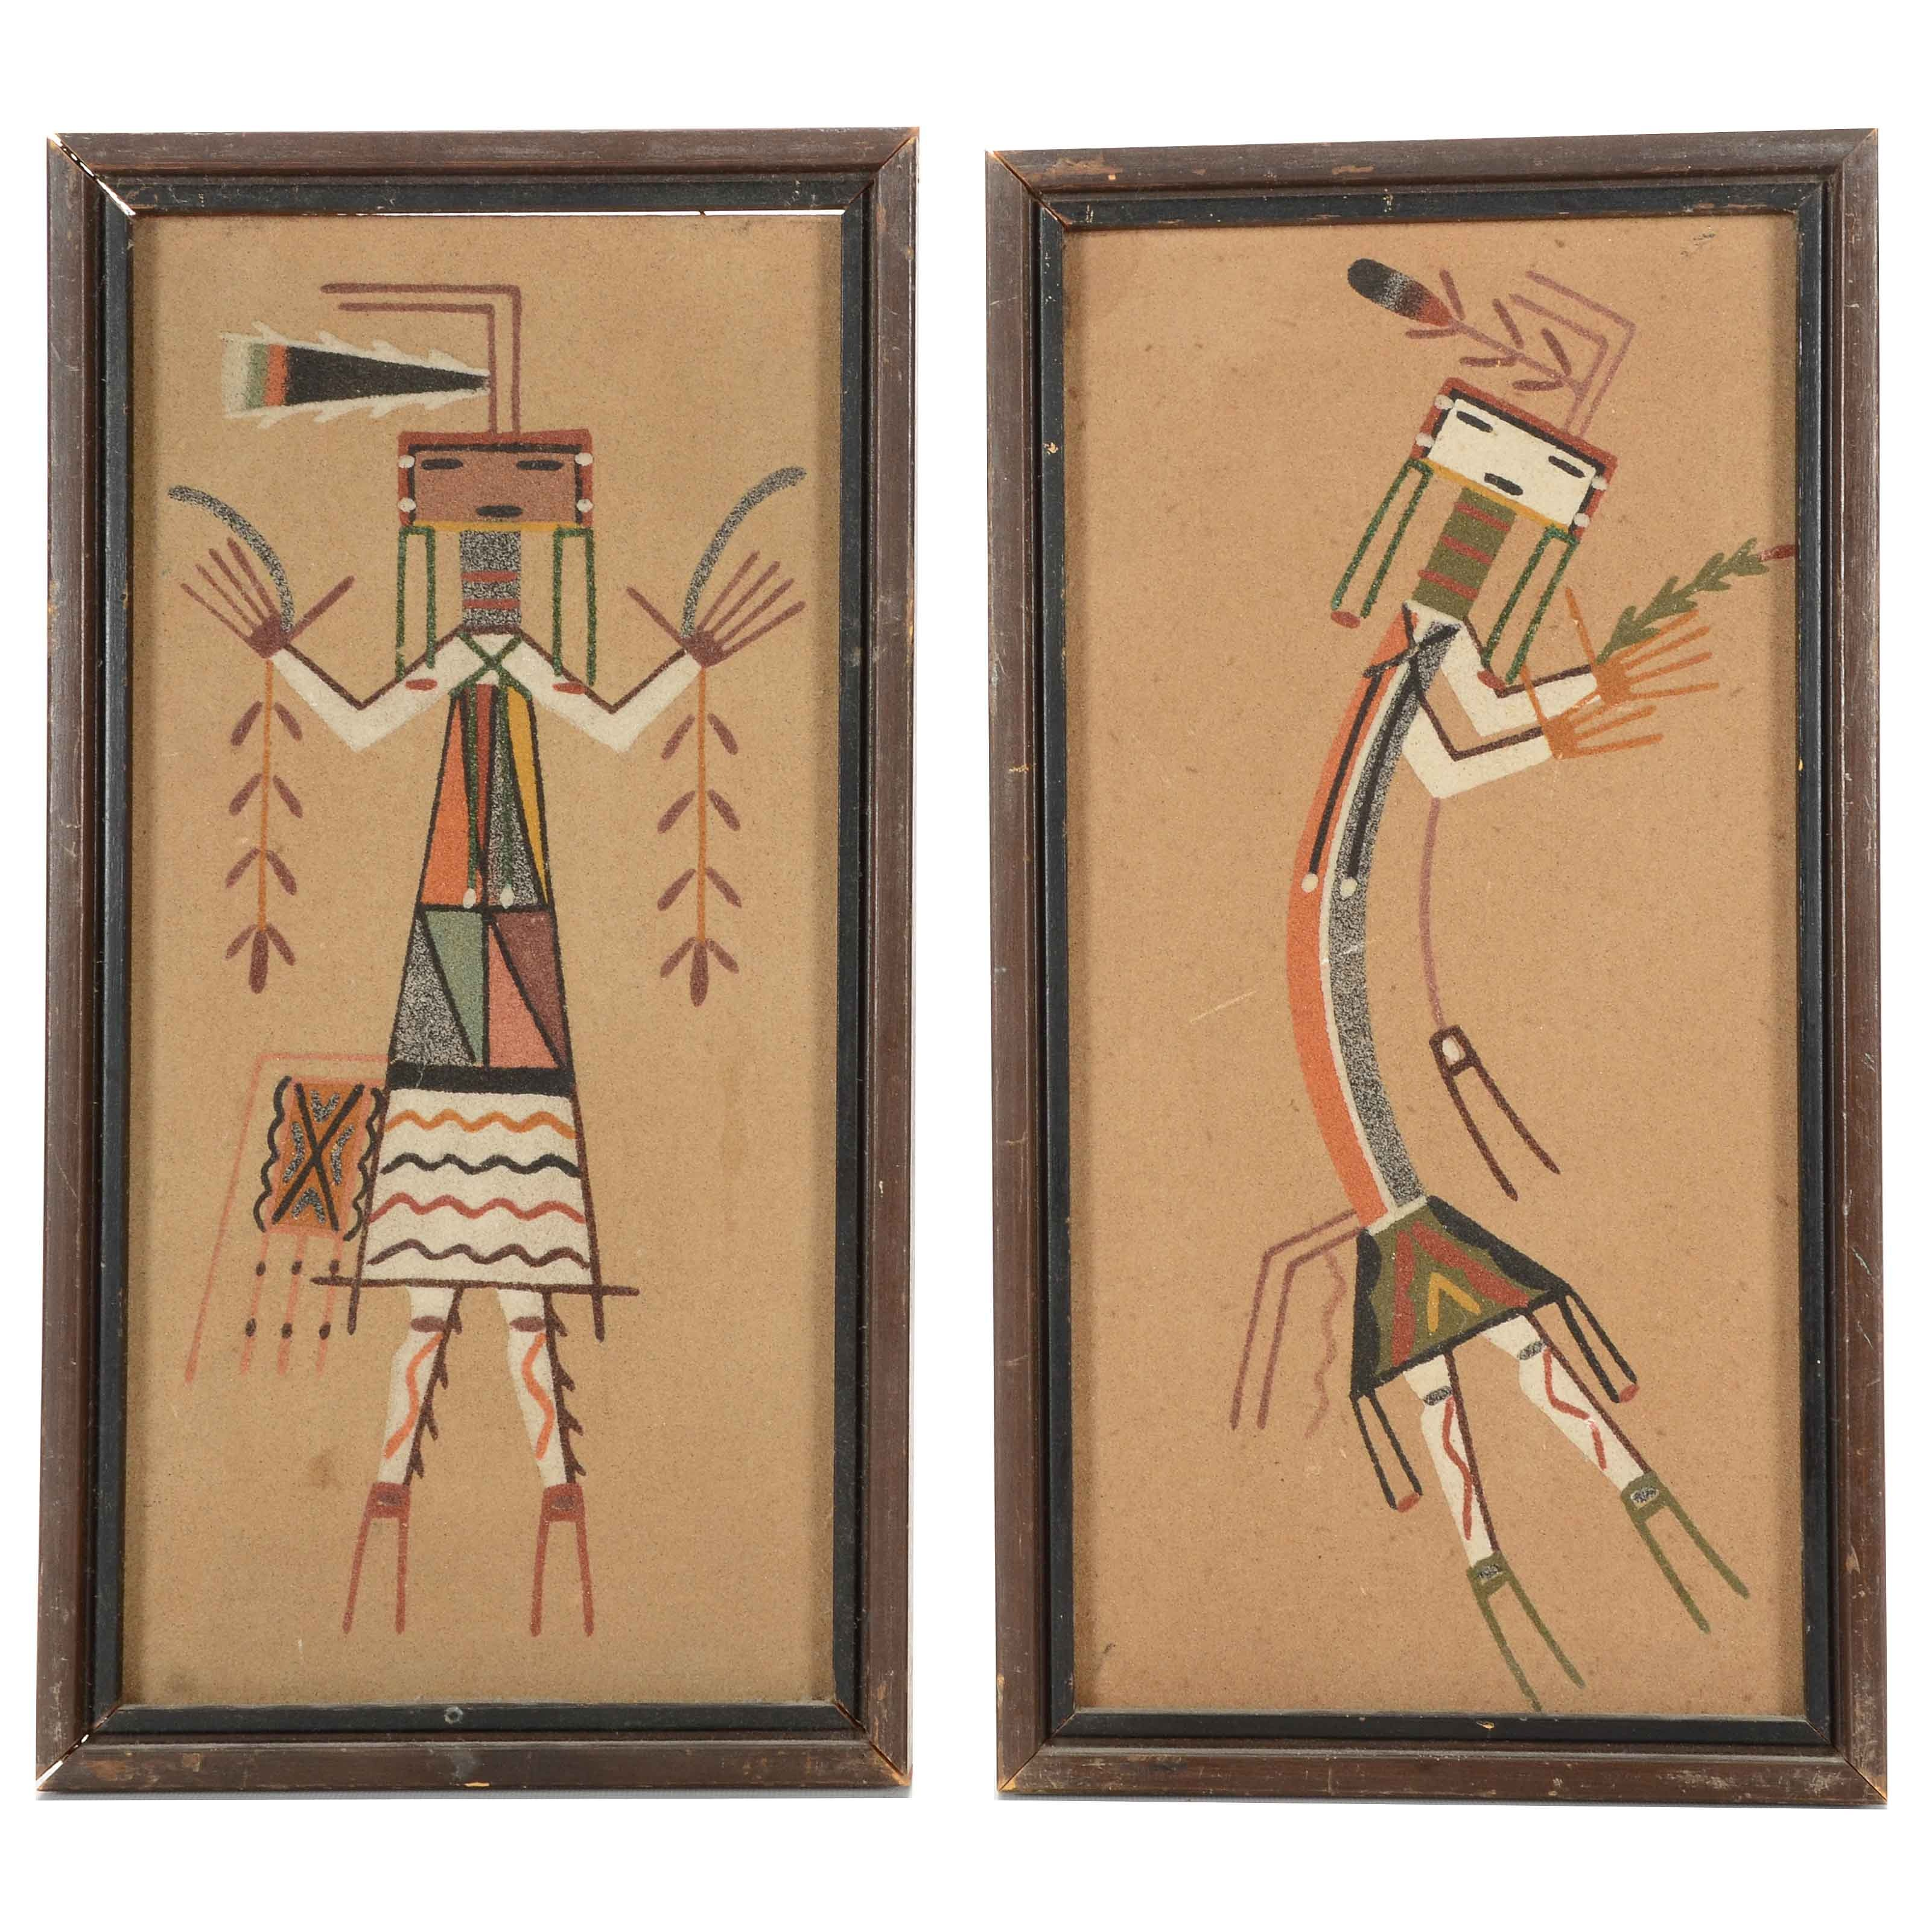 Two Navajo Style Sand Paintings on Board Attributed to Elise Y. Watchman